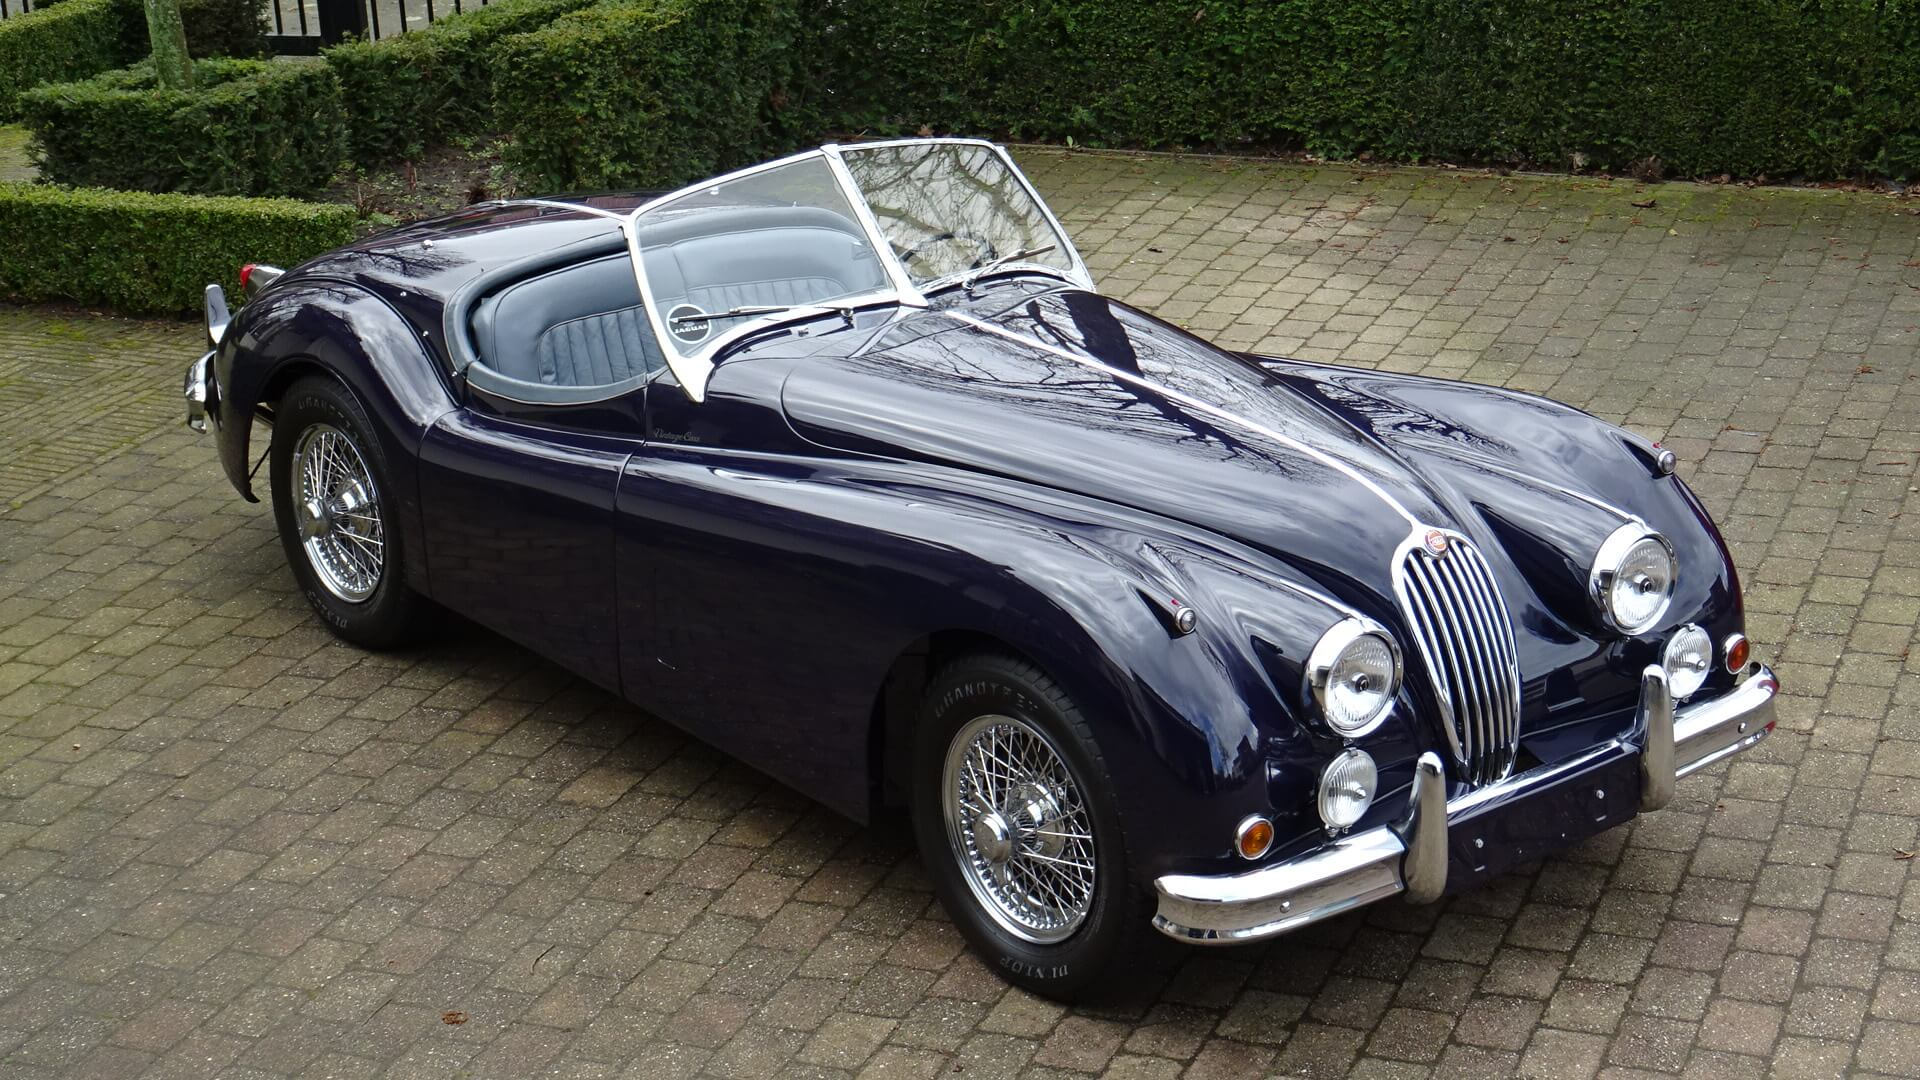 54 jaguar xk 140 ots se union jack vintage cars. Black Bedroom Furniture Sets. Home Design Ideas